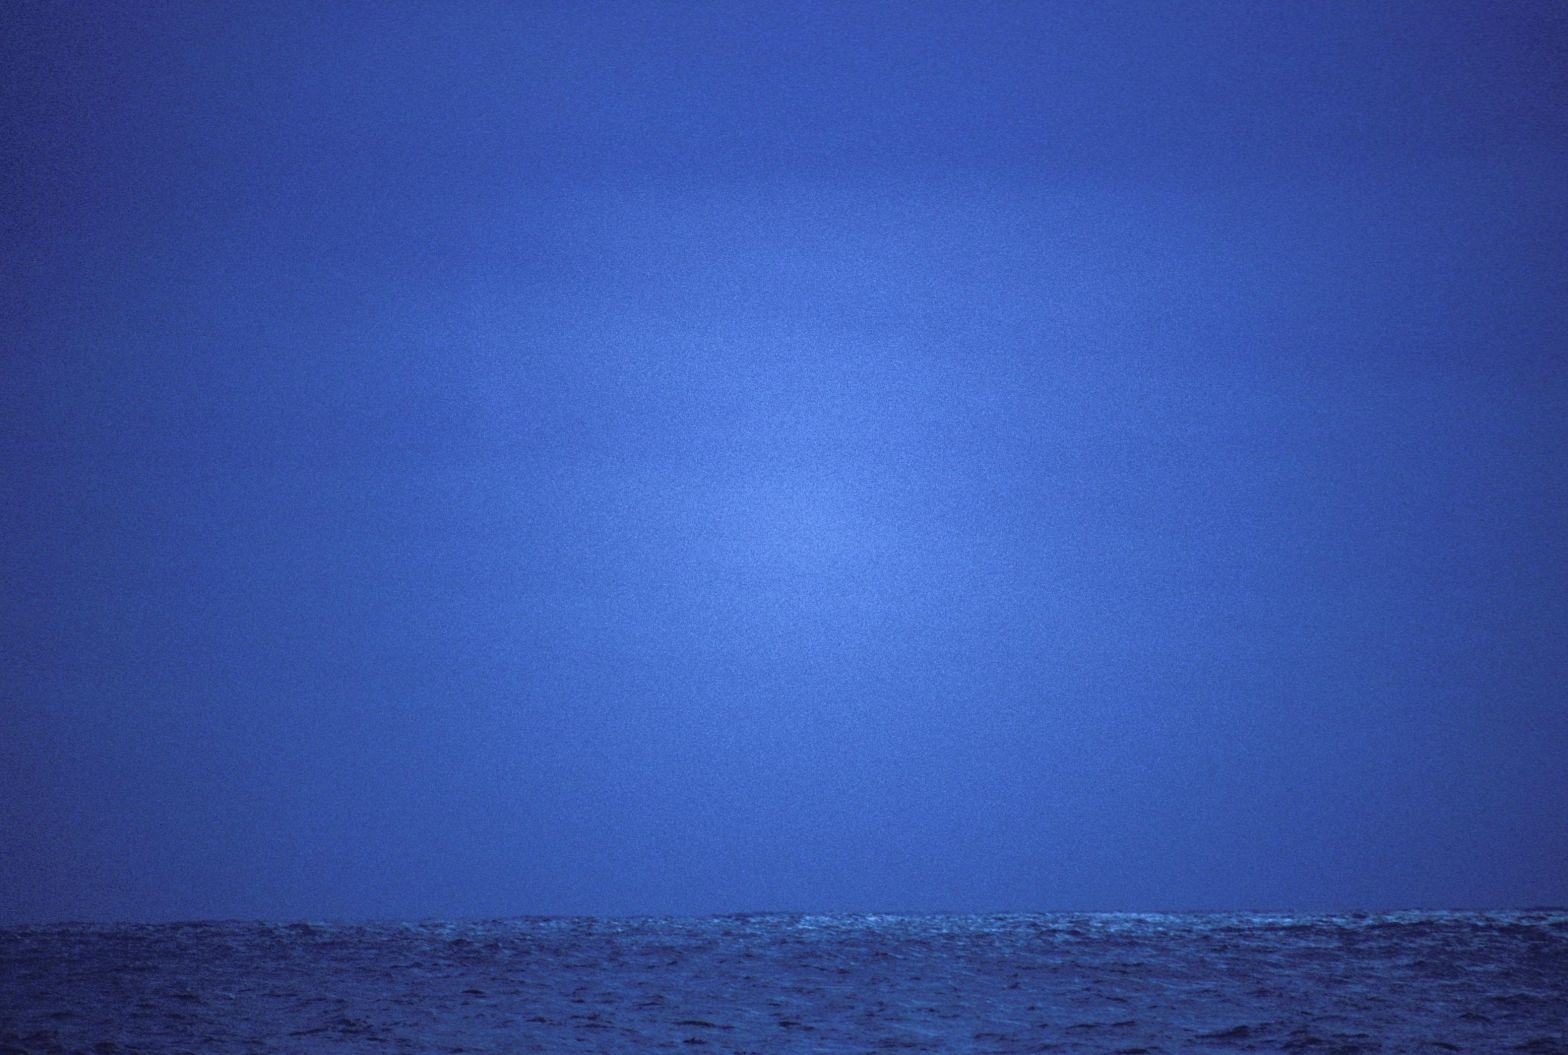 Ocean Powerpoint Templates and [41 ] Ocean Scapes Wallpaper On Wallpapersafari